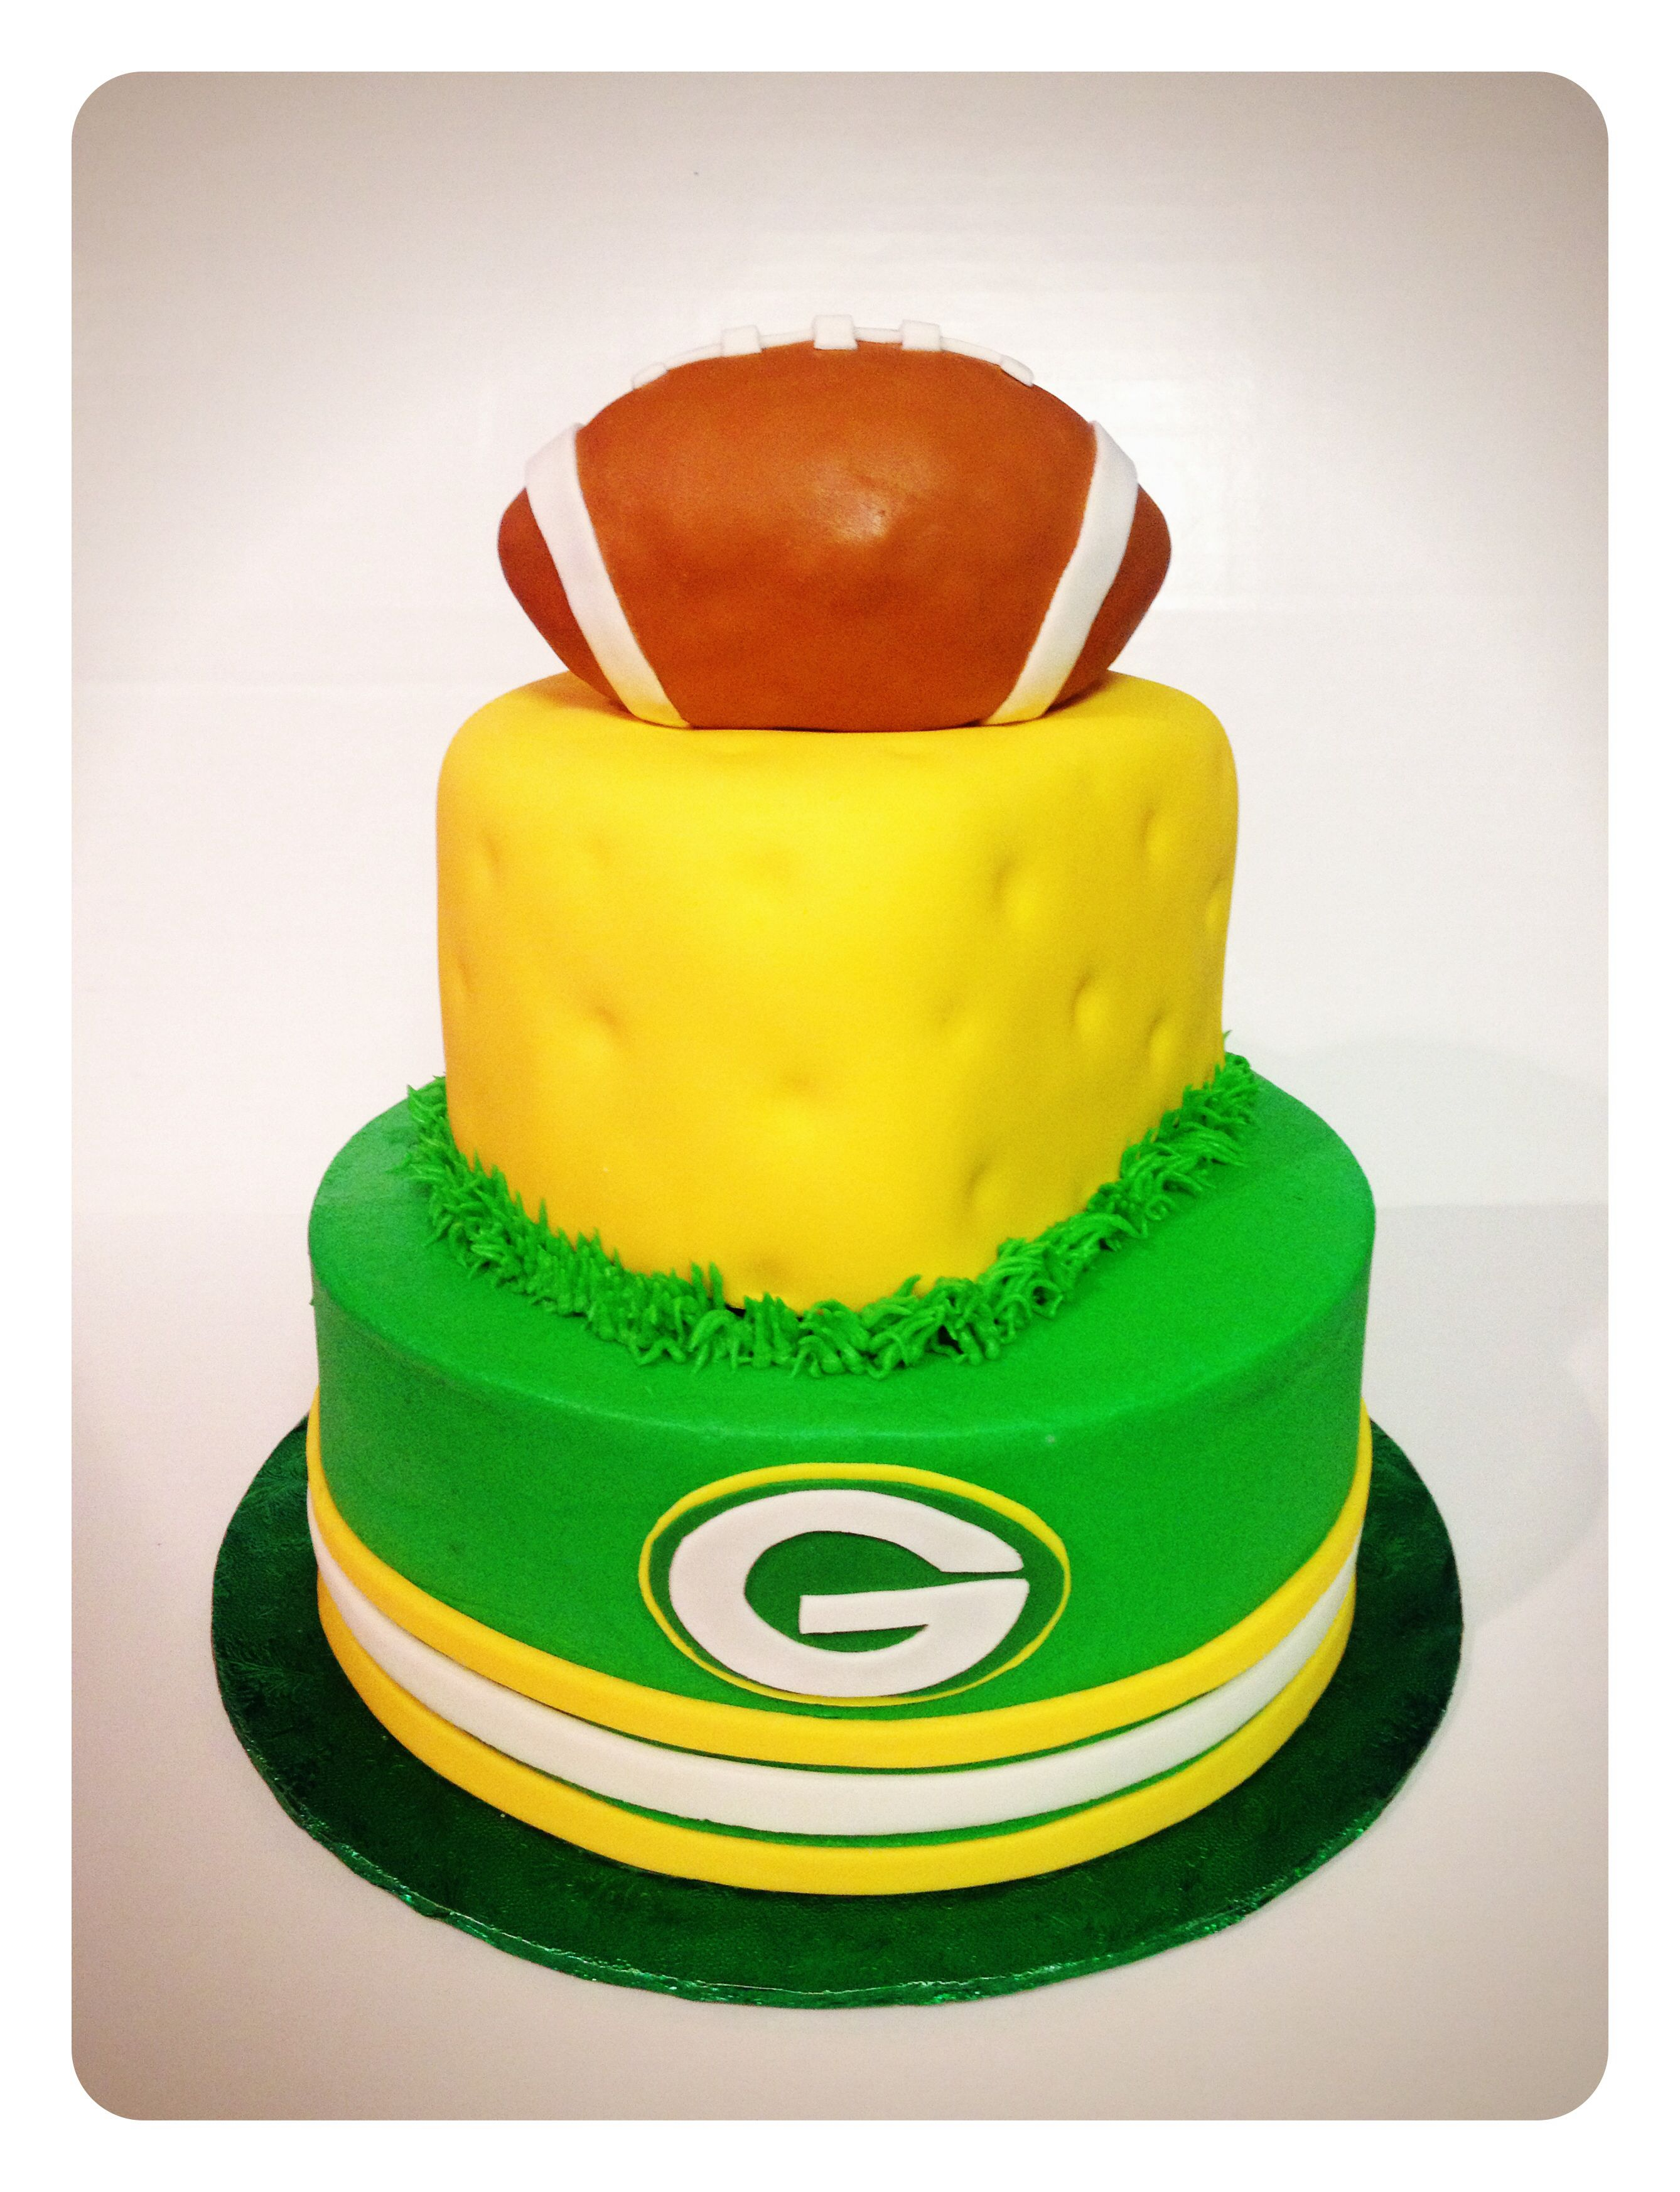 I would love this cake for my bday | Green Bay Packers | Pinterest ...